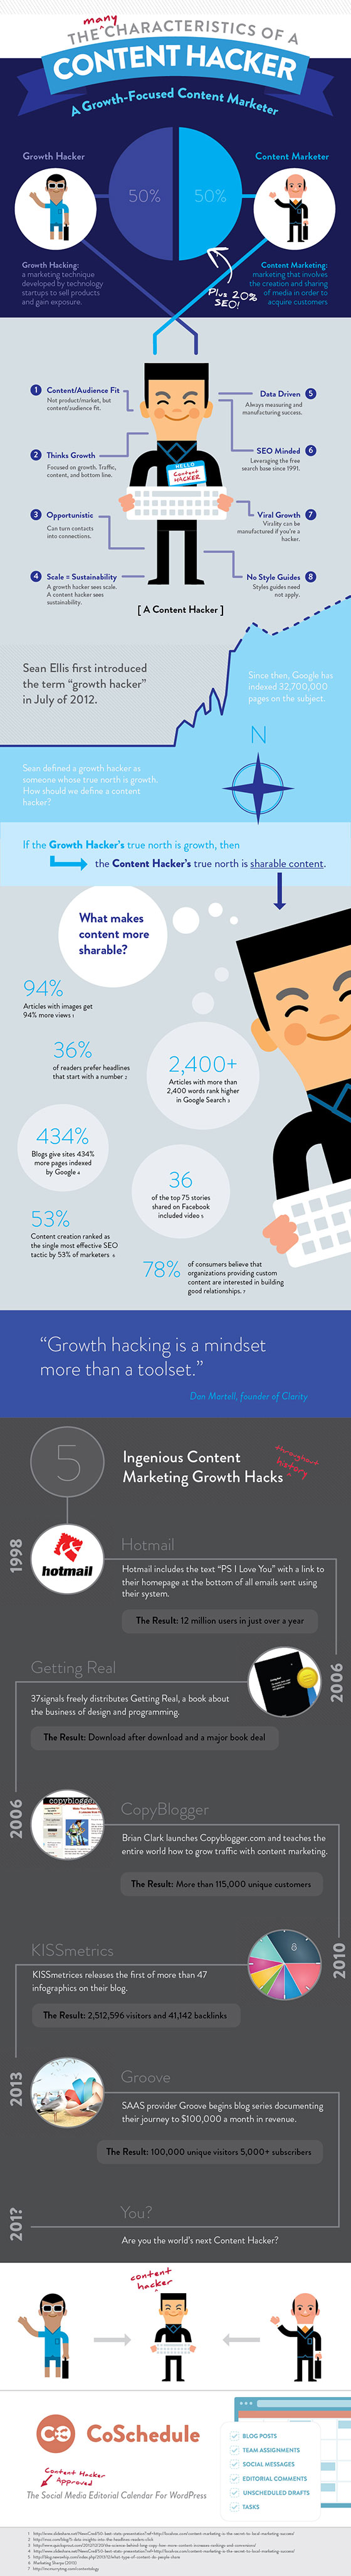 content-hacker-infographic